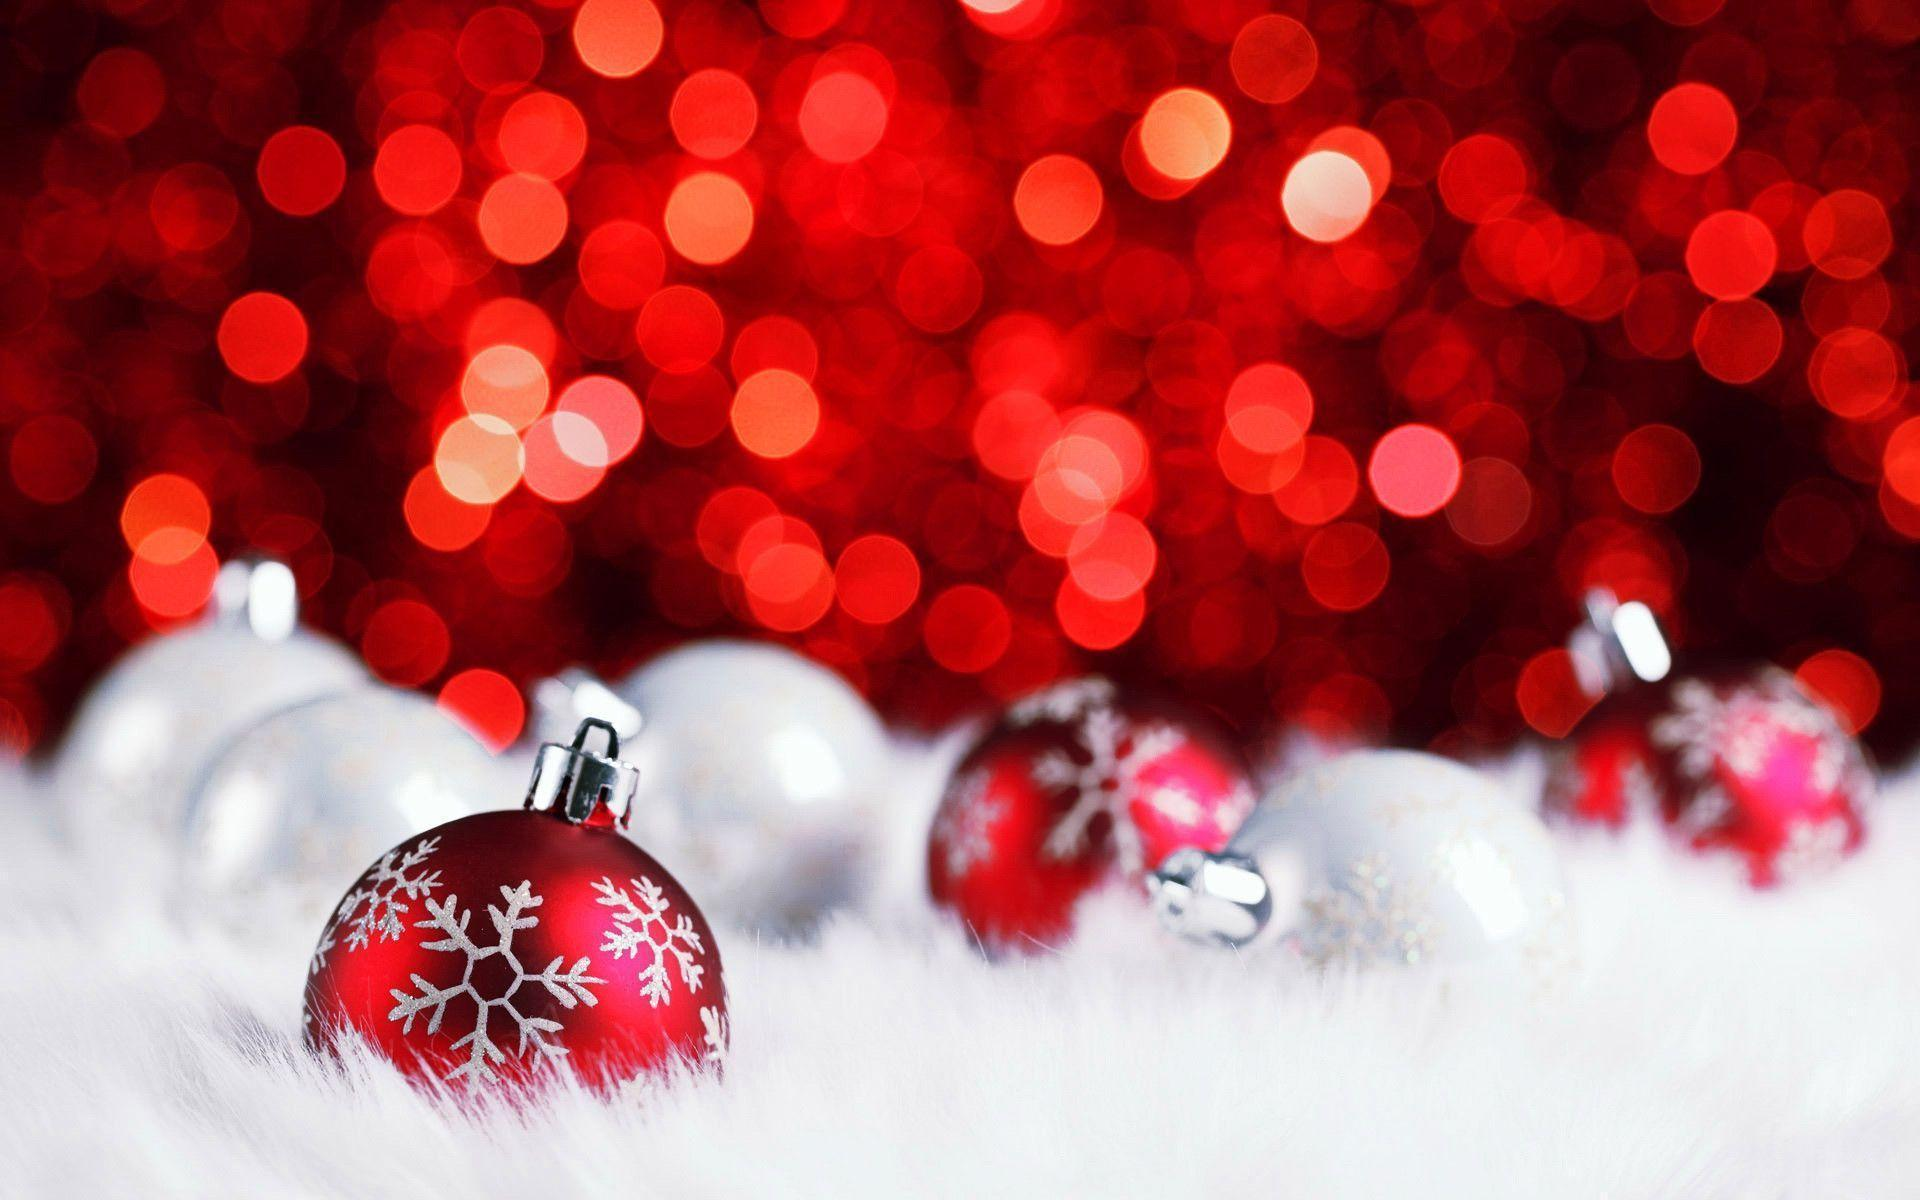 Red Aesthetic Christmas Wallpapers , Top Free Red Aesthetic